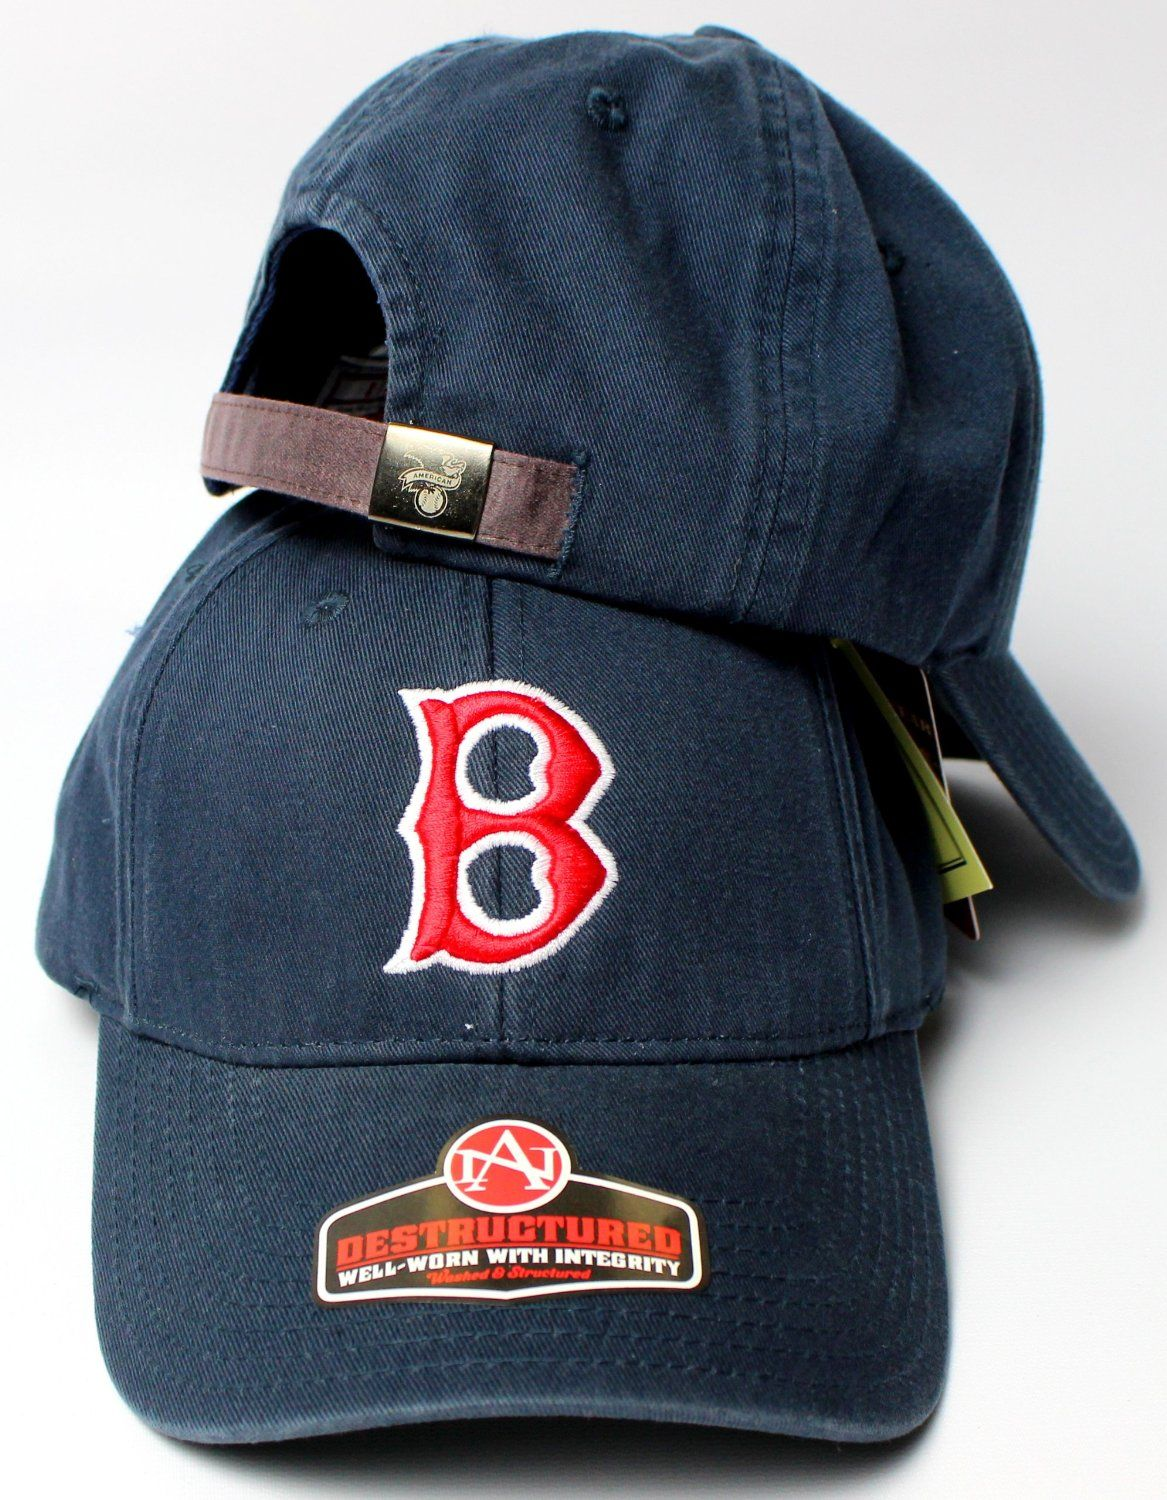 best service 1a6c8 99fc8 Amazon.com   Boston Red Sox MLB American Needle 1946 Cooperstown Pastime  Replica Destructured Adjustable Cap Navy   Sports   Outdoors